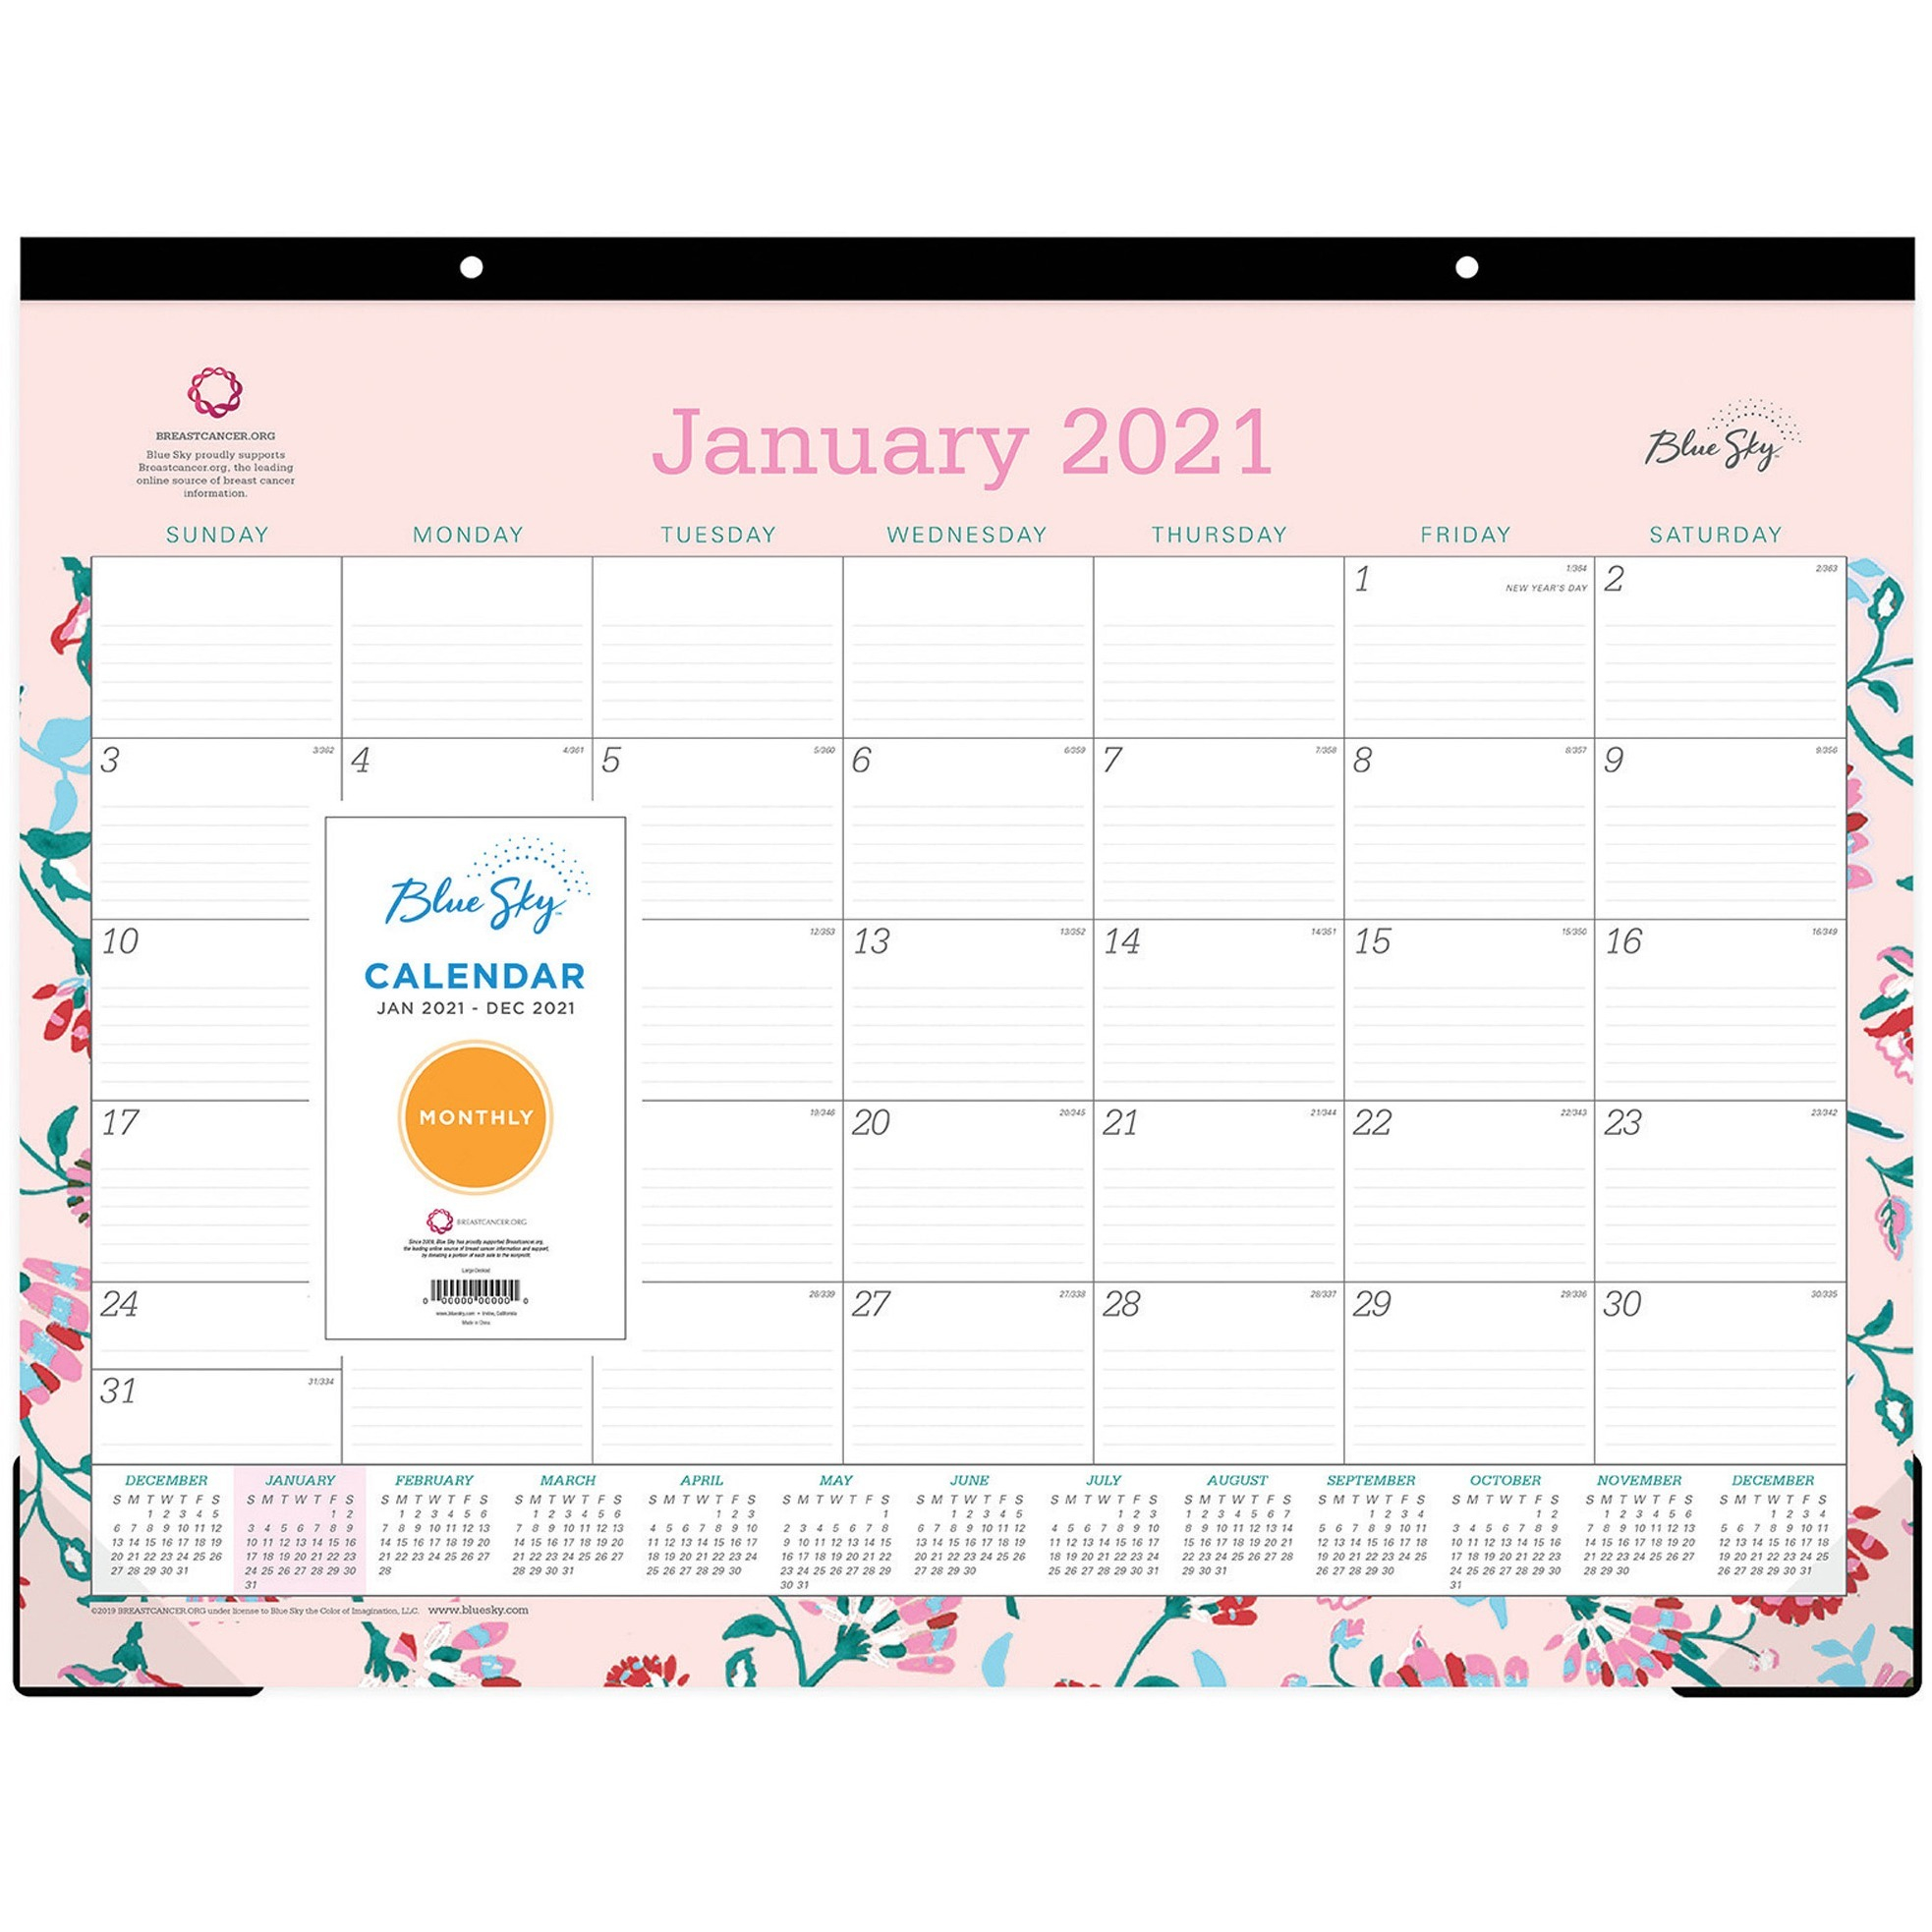 Blue Sky Breast Cancer Awareness Desk Pad Julian Dates Monthly 1 Year January 2021 till December 2021 22 x 17 Sheet Size Desk Pad BLS x